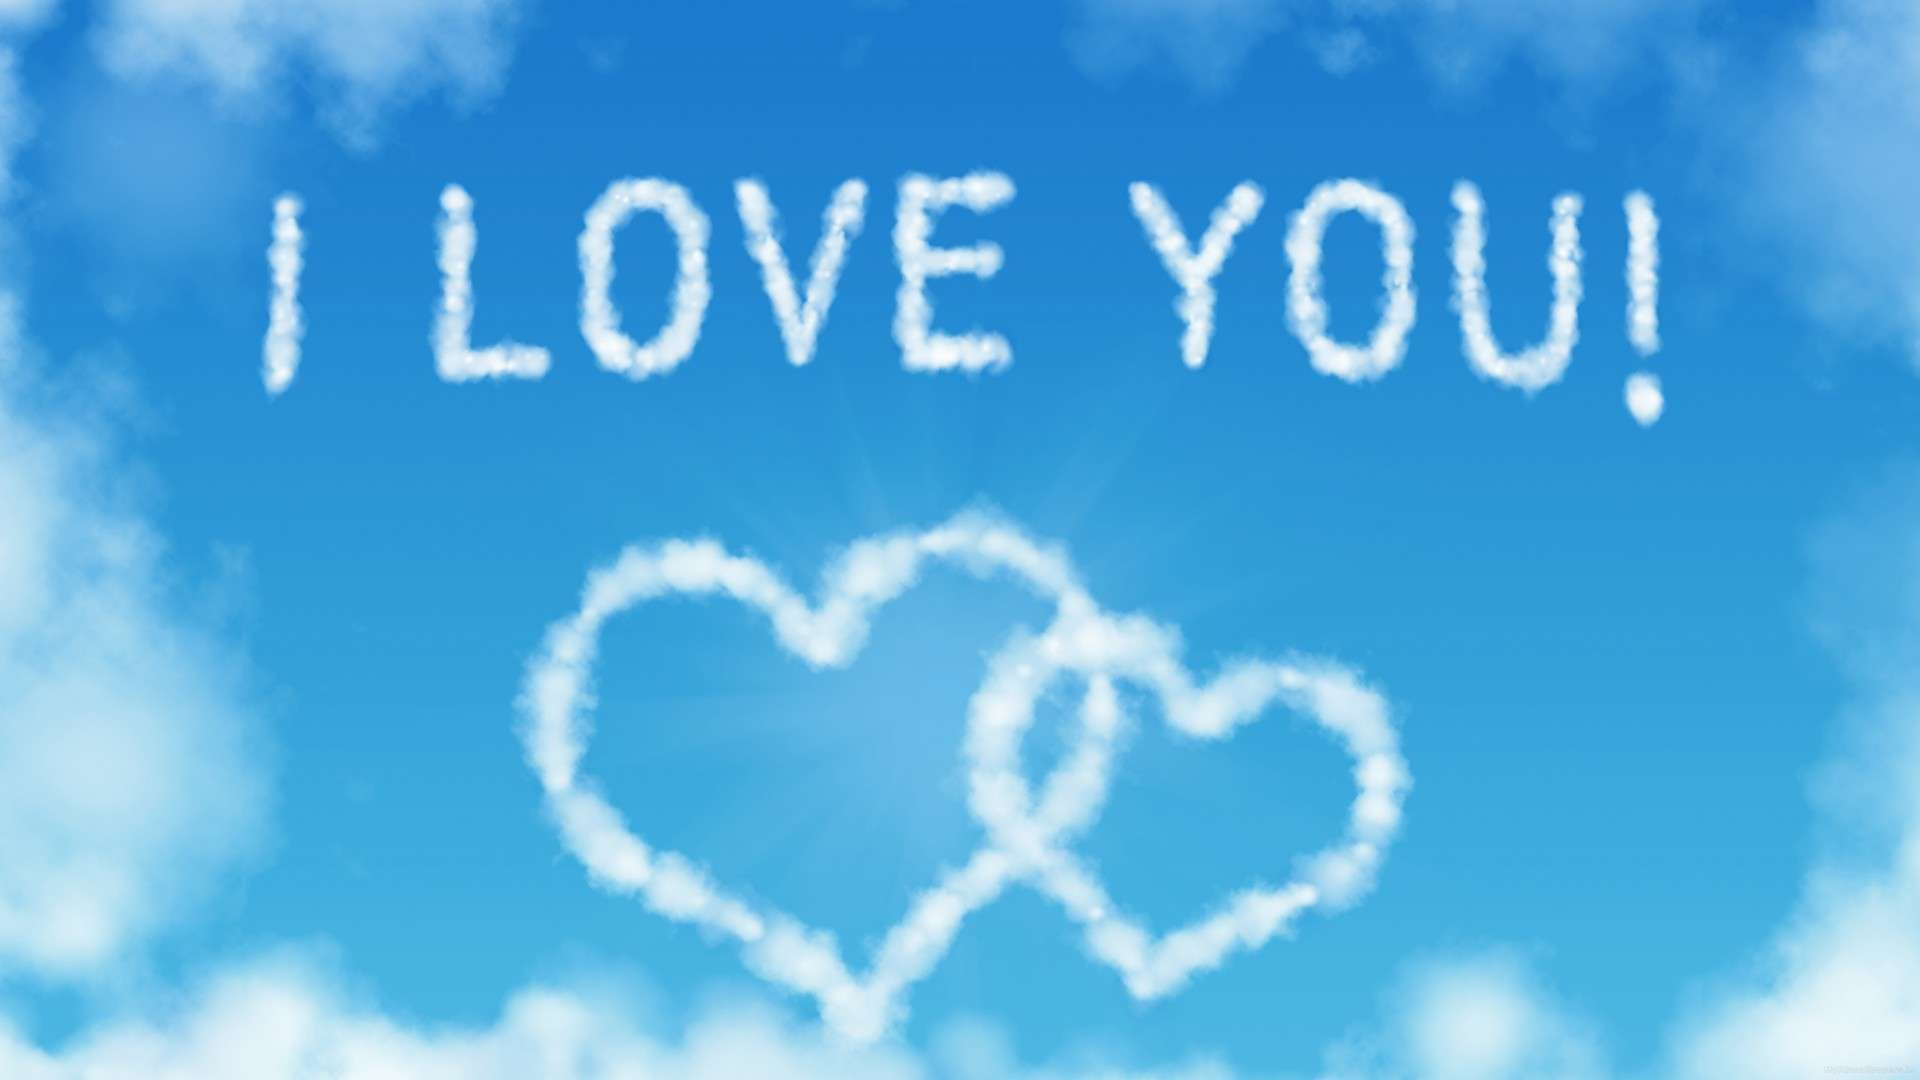 I Love You Hd Wallpaper Widescreen : Hd Wallpapers